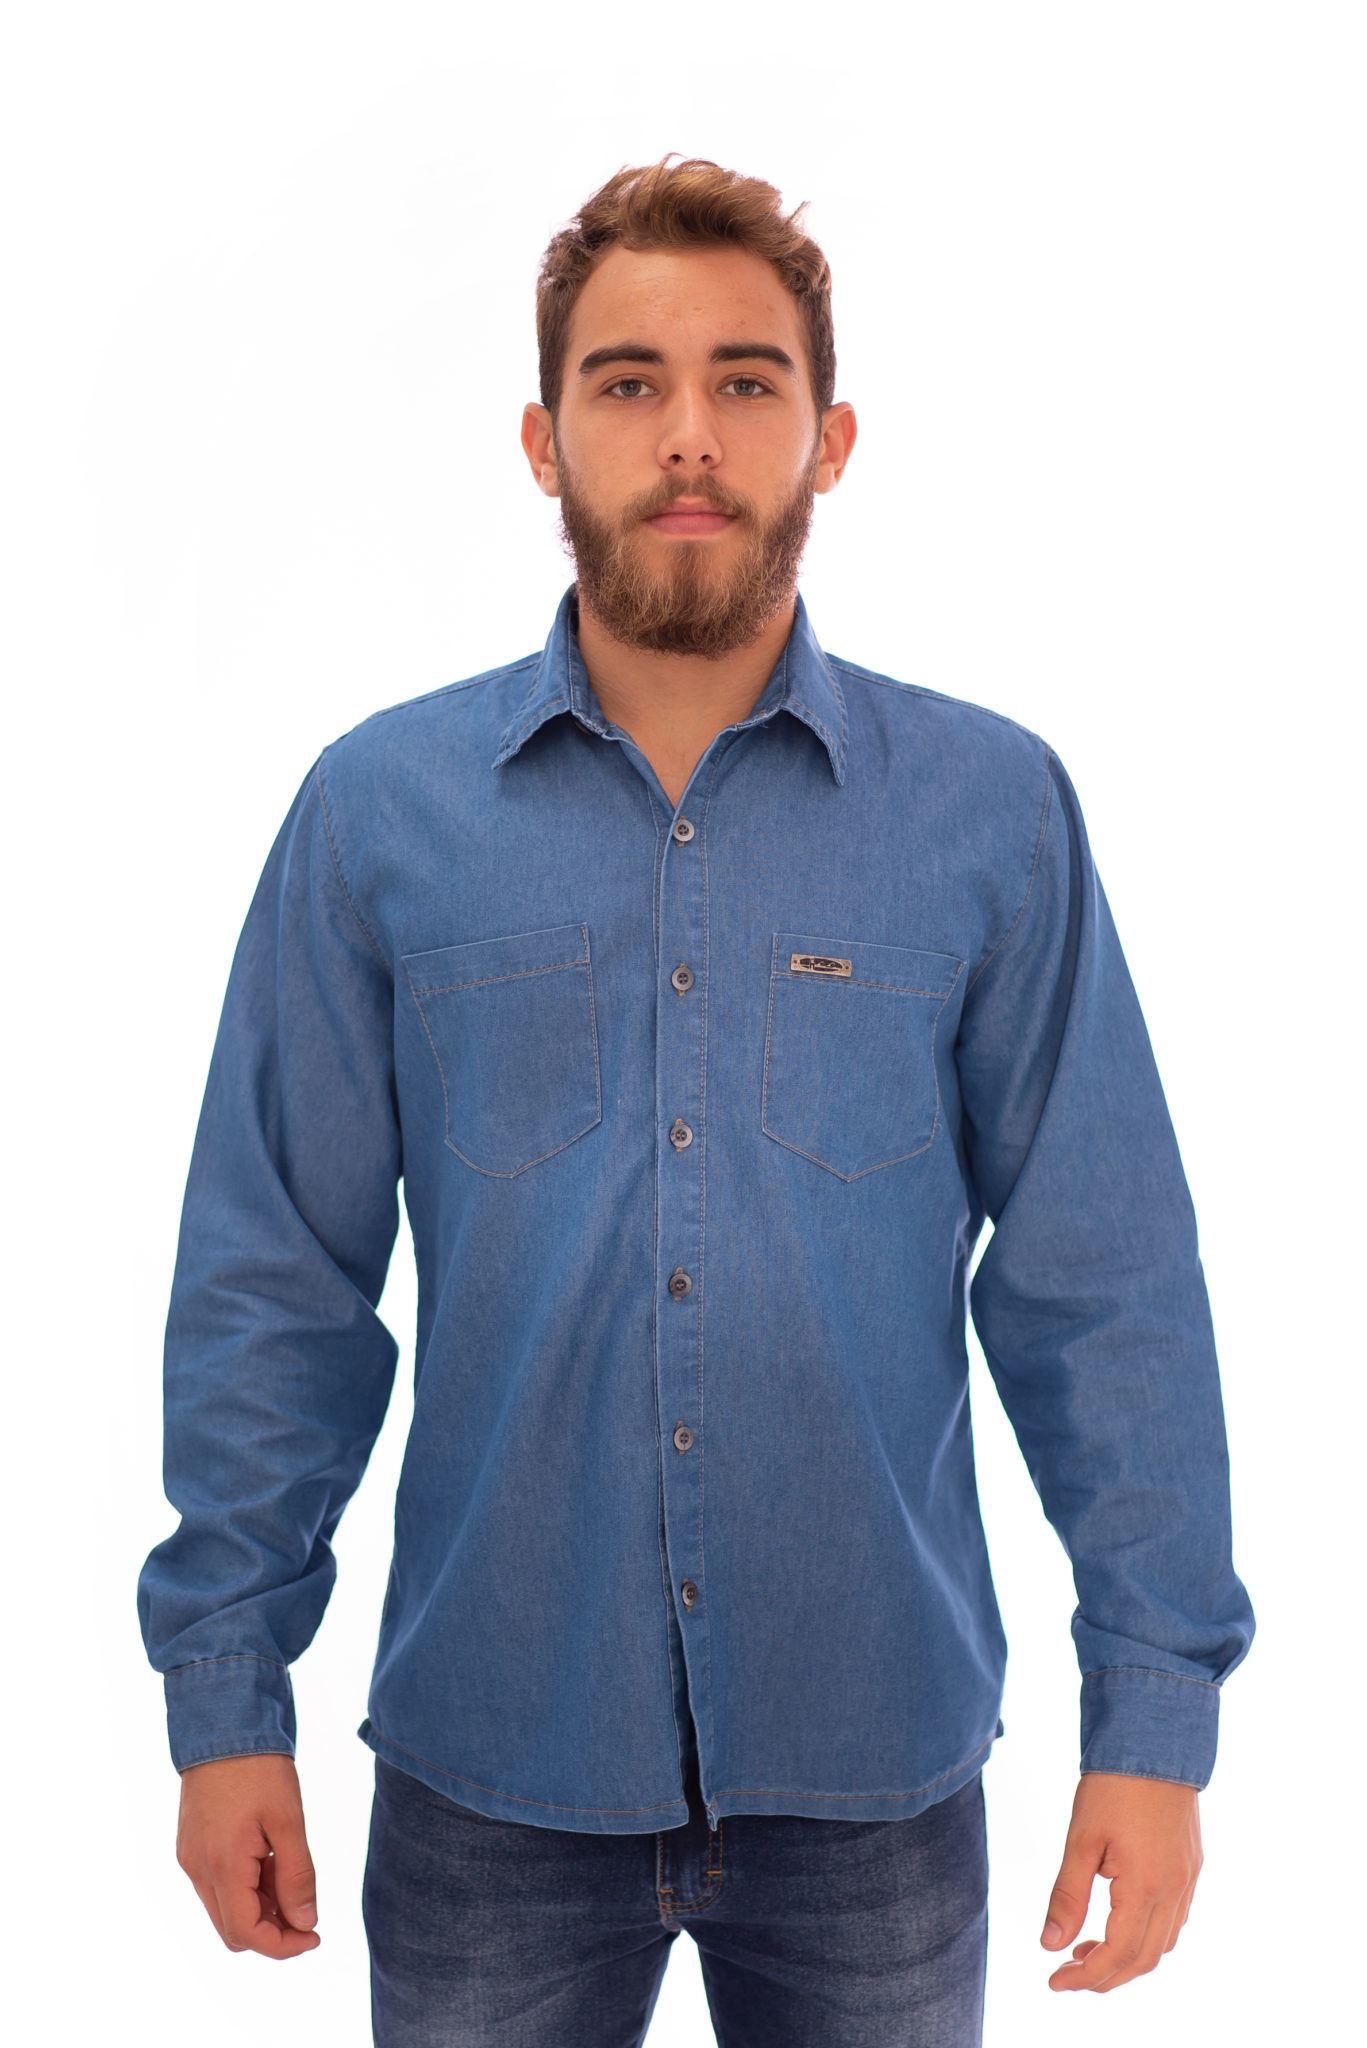 CAMISA JEANS MASCULINA REF. 405